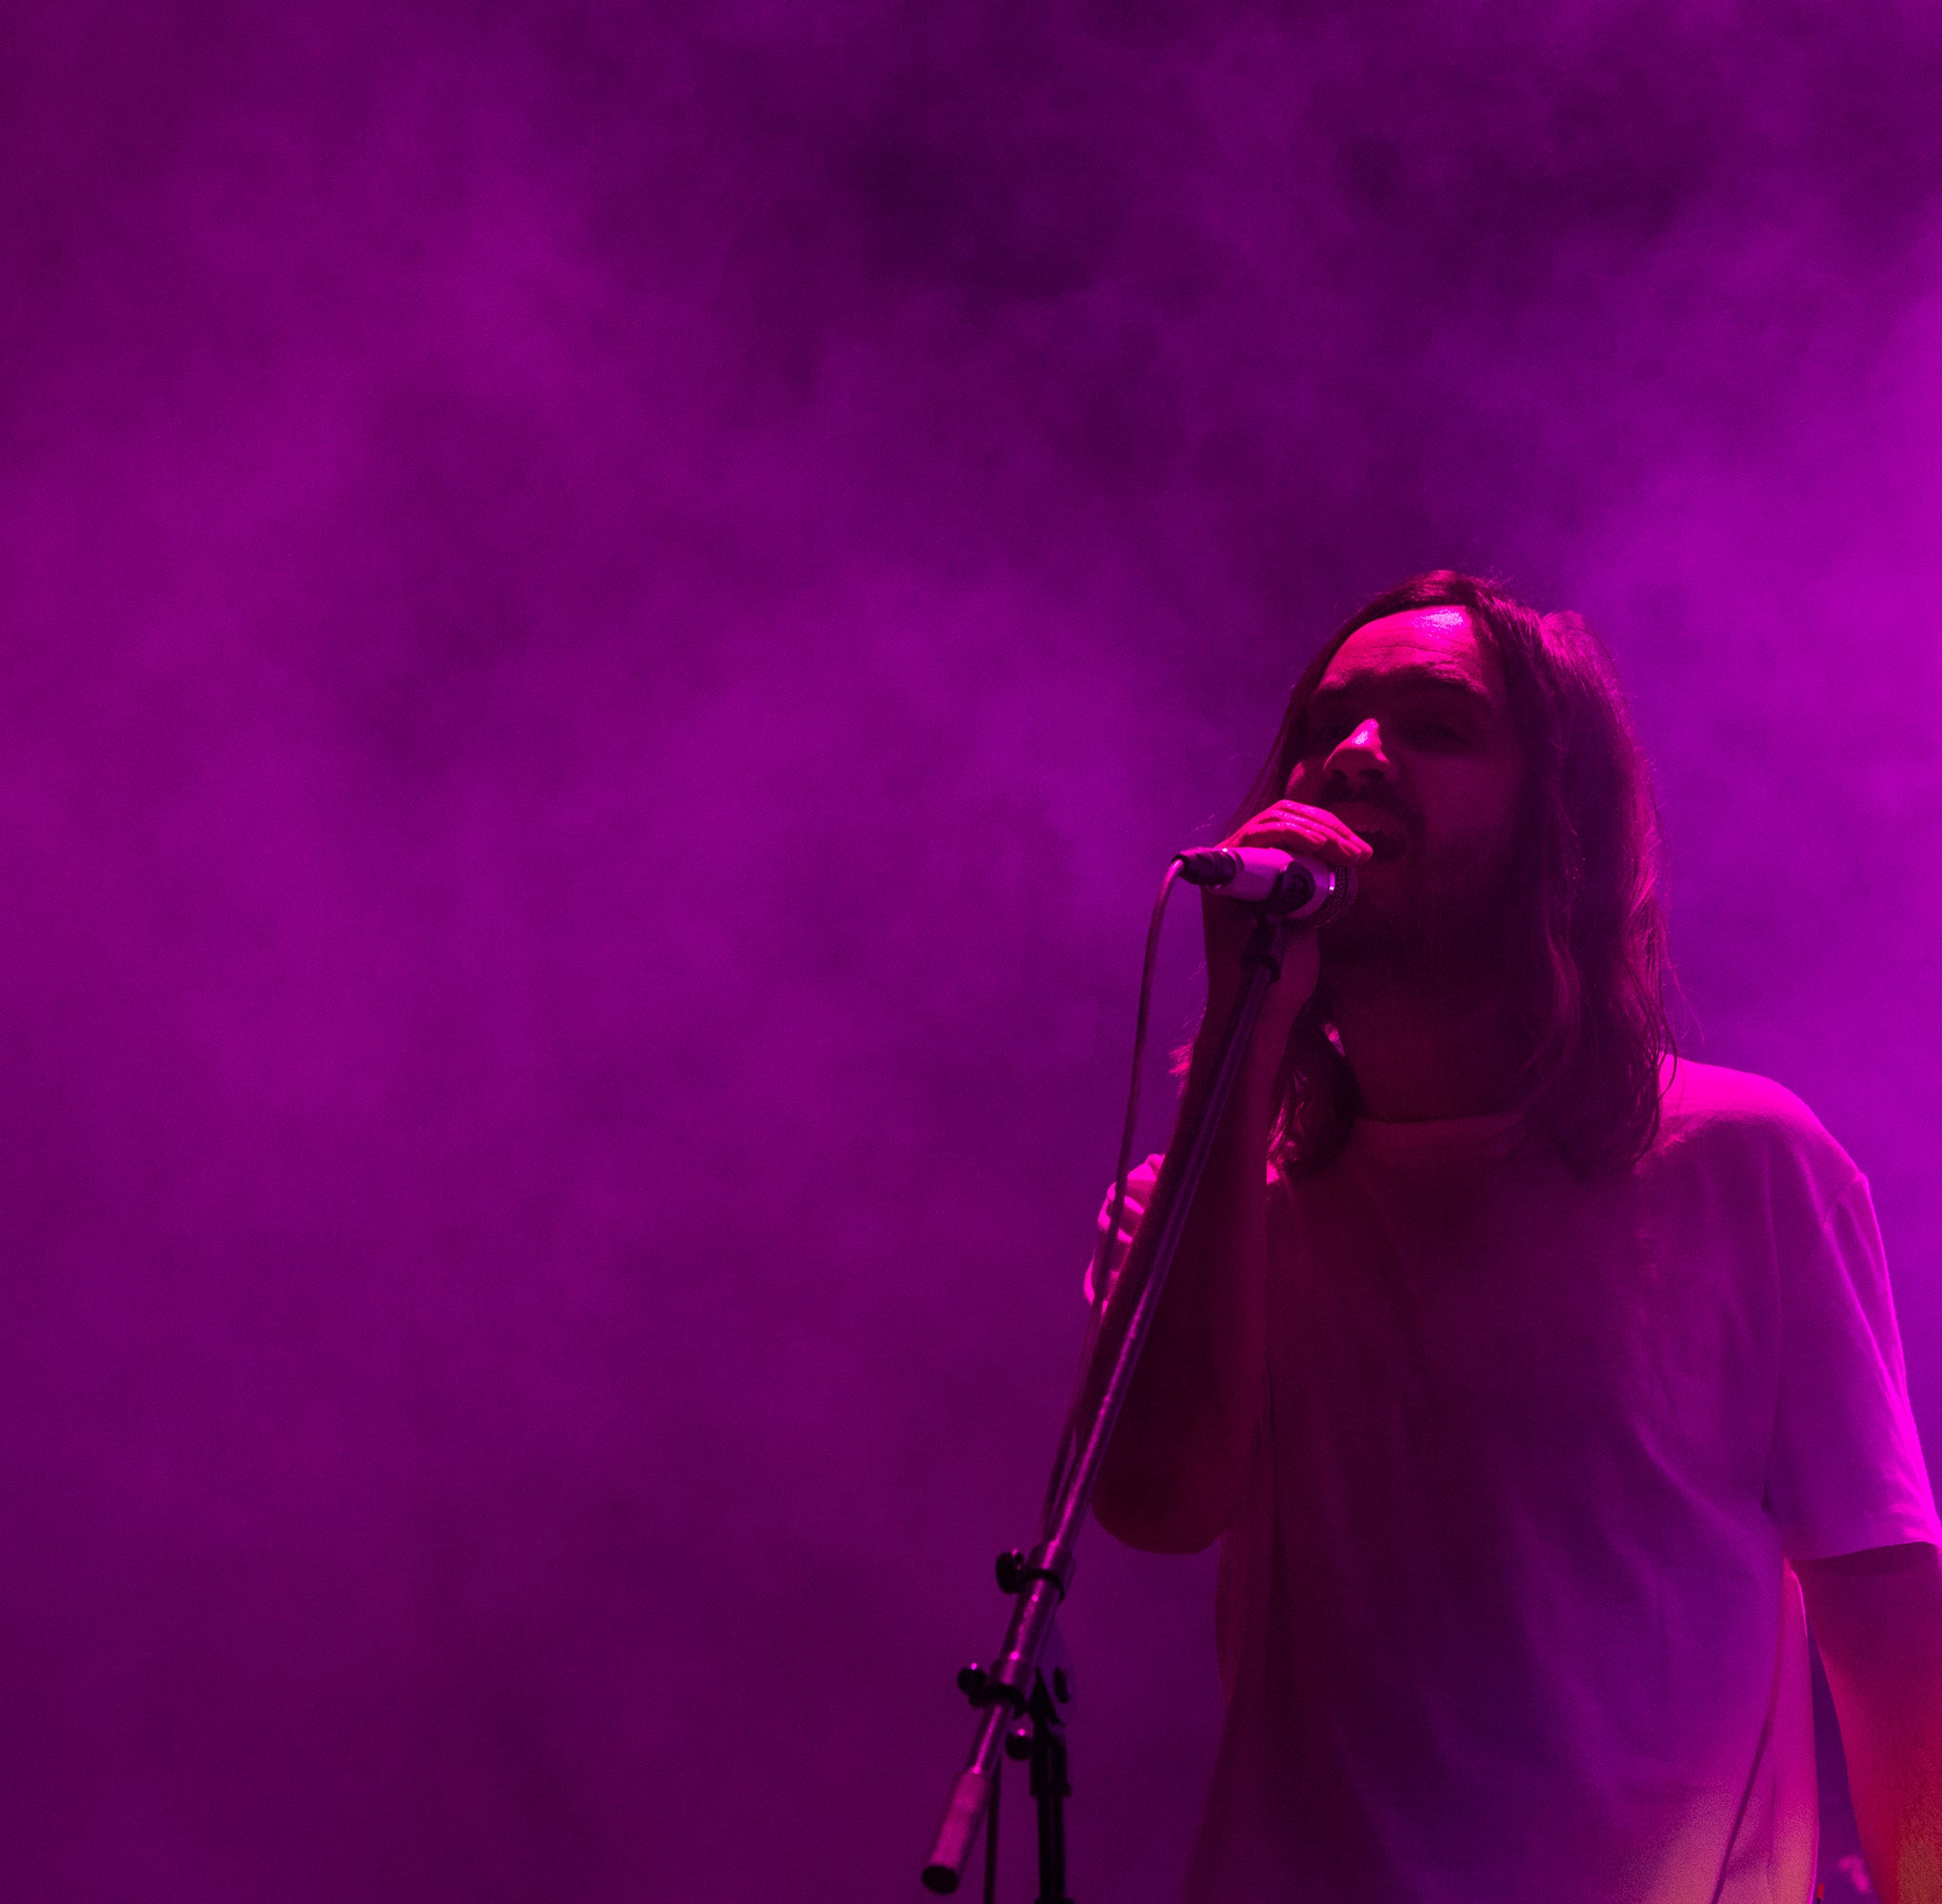 Review: Tame Impala dazzles with visually striking, psychedelic Coachella set